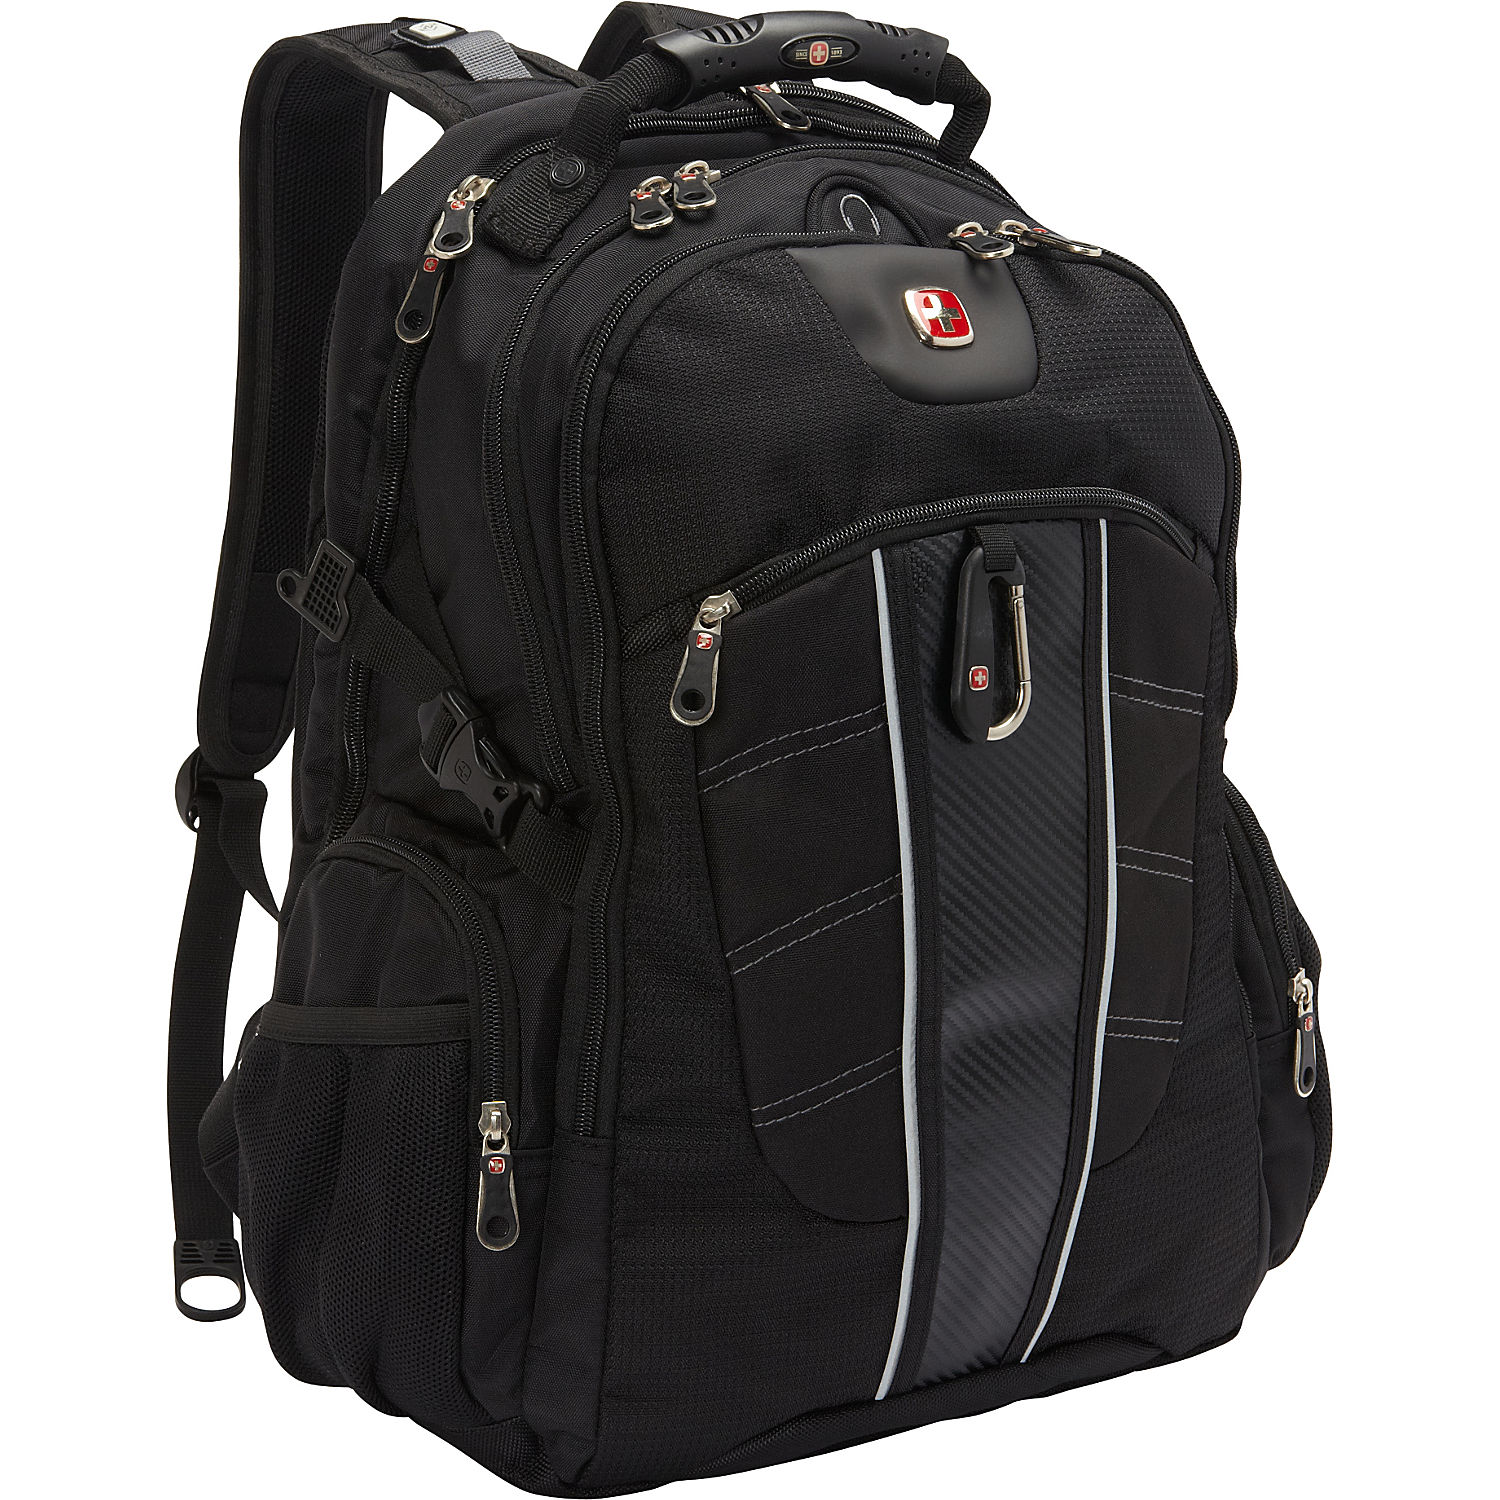 swiss gear backpack review Backpack Tools